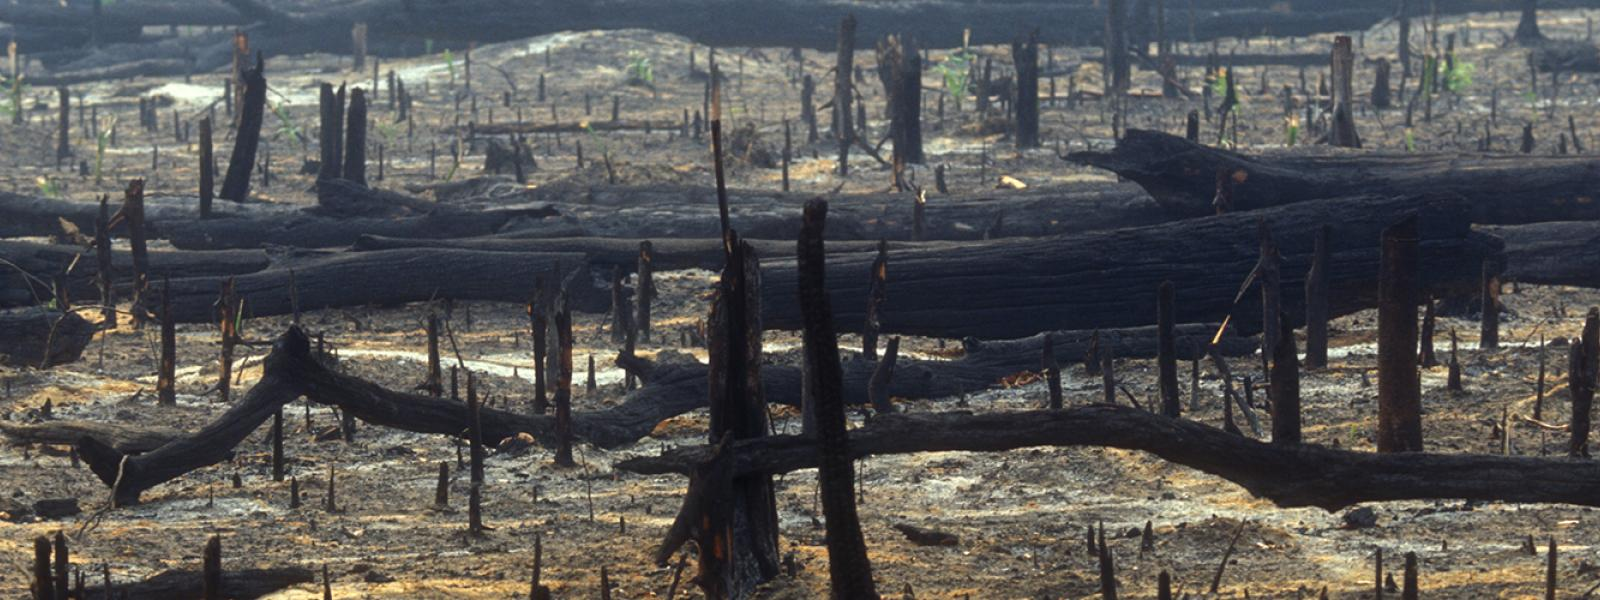 Forest fires in the Amazon